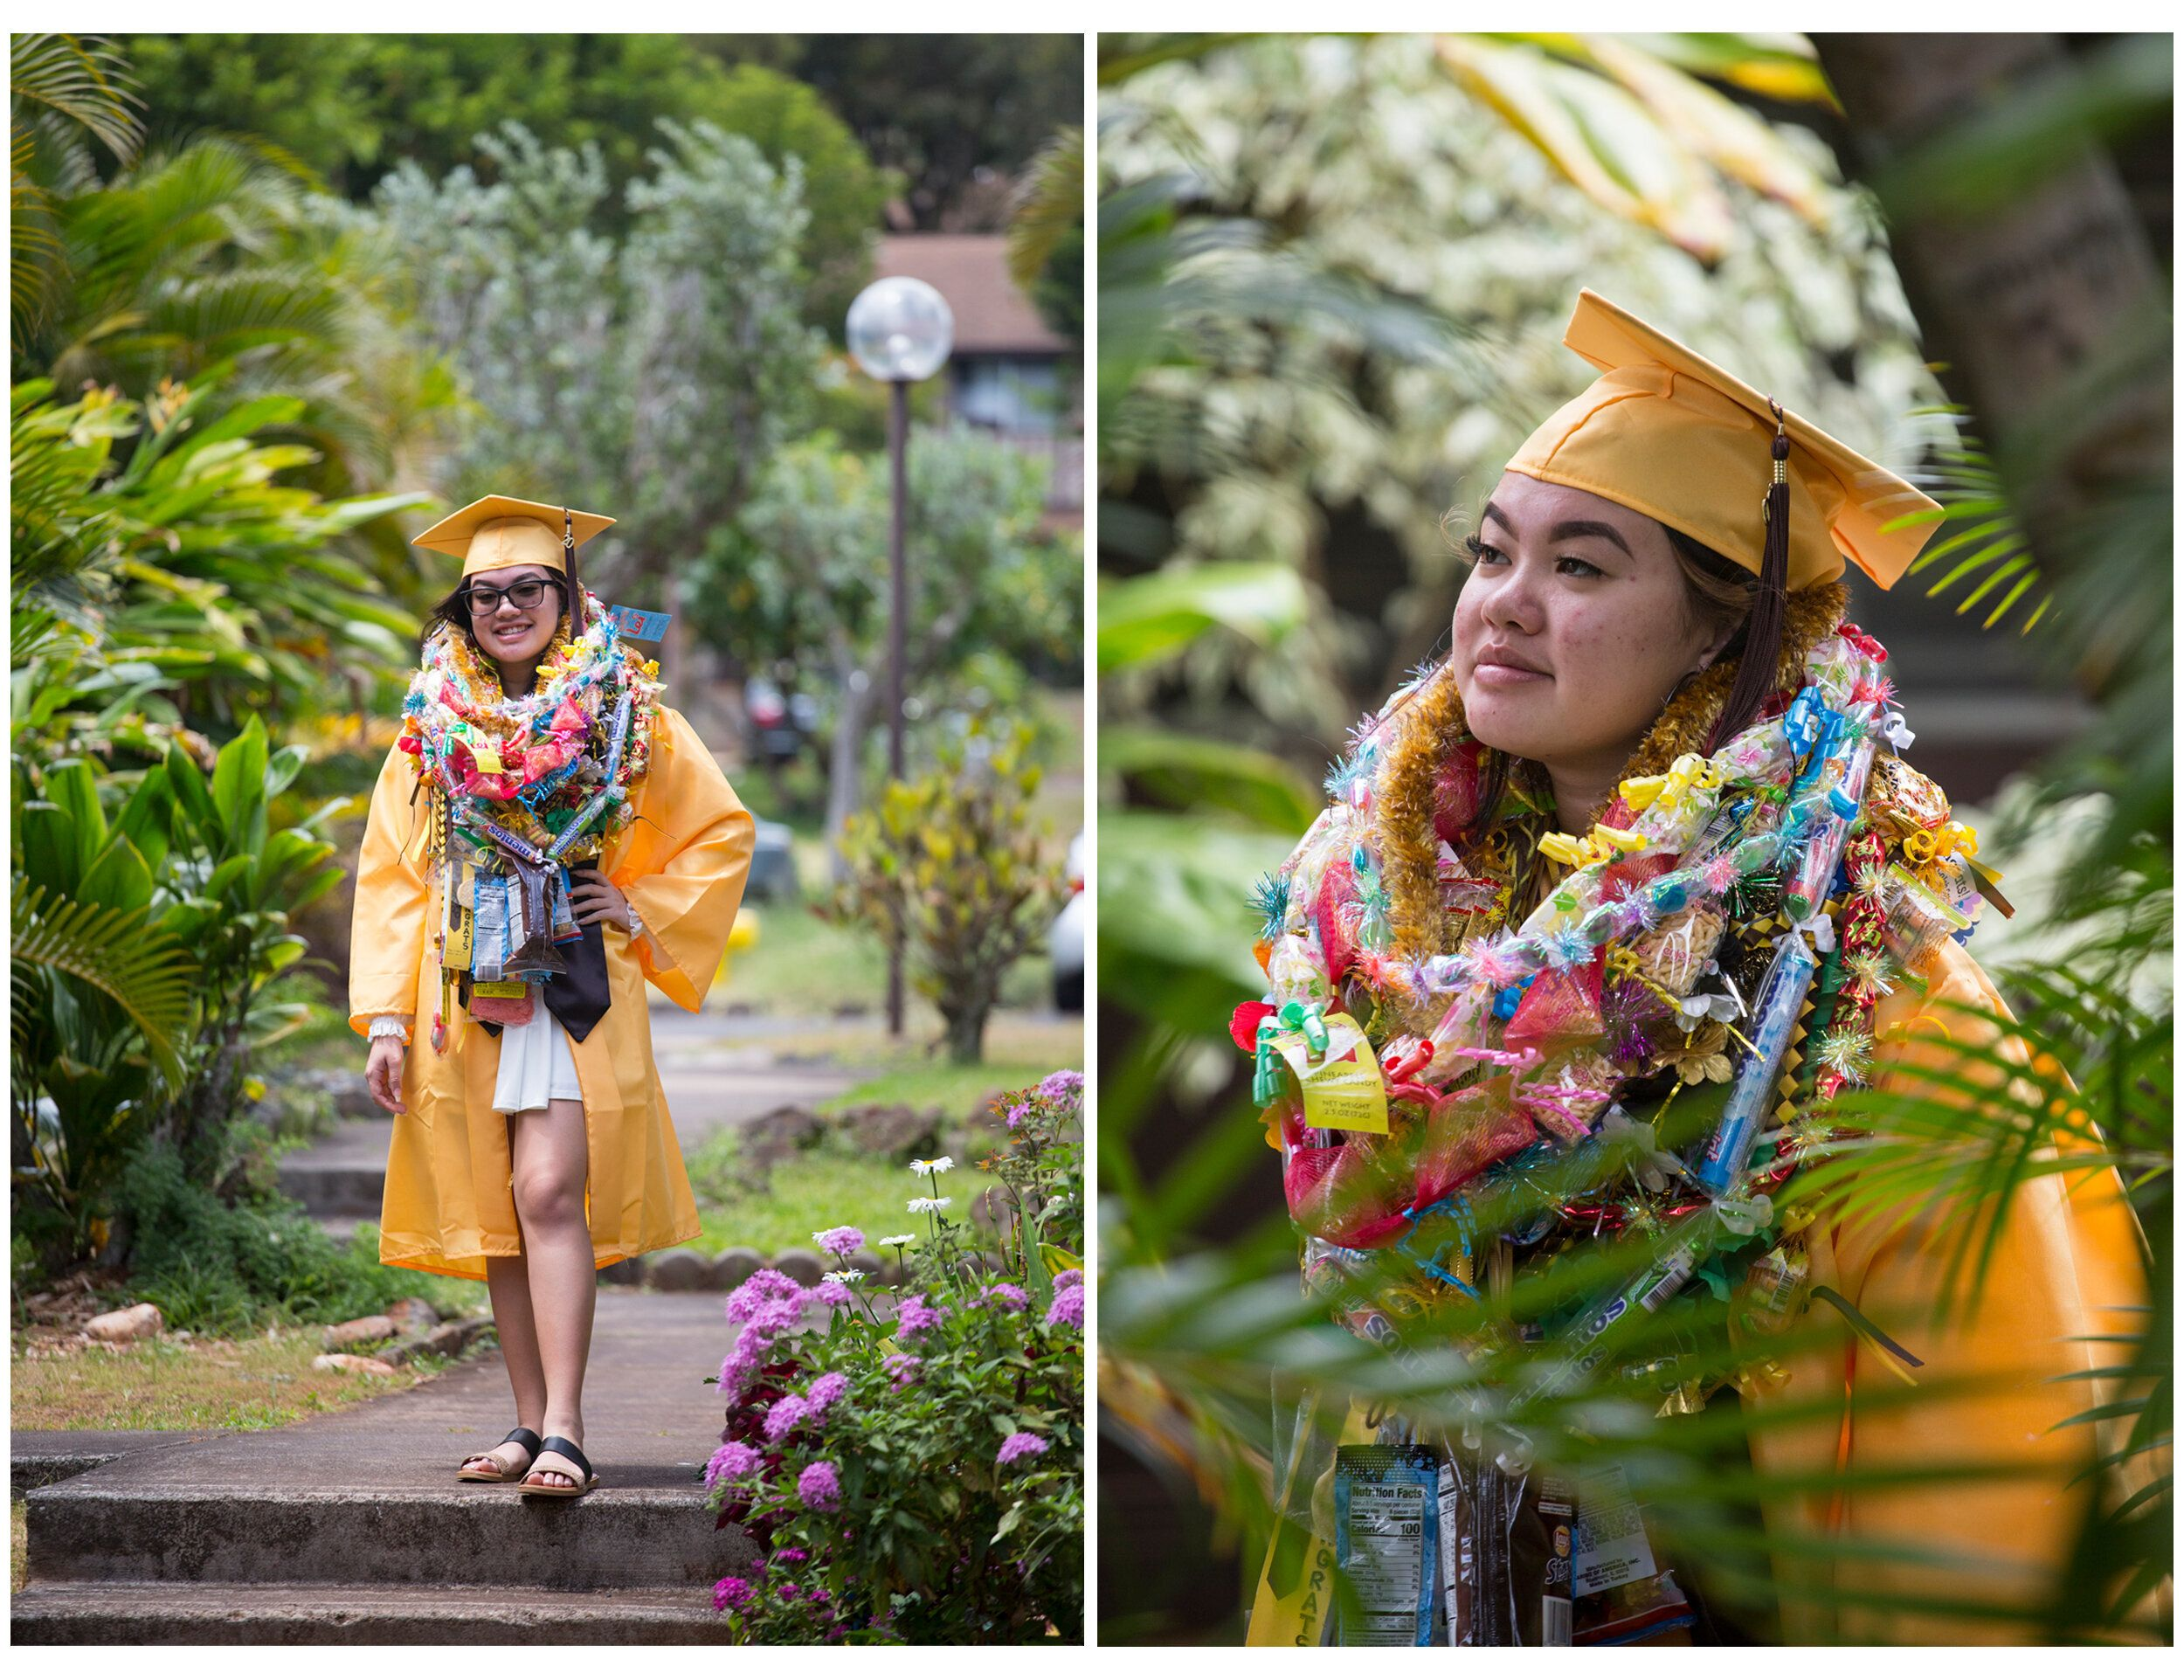 Ashley Phommavong, a Mililani High School graduate, was one of the few graduates to attend a socially distanced ceremony.&nbs